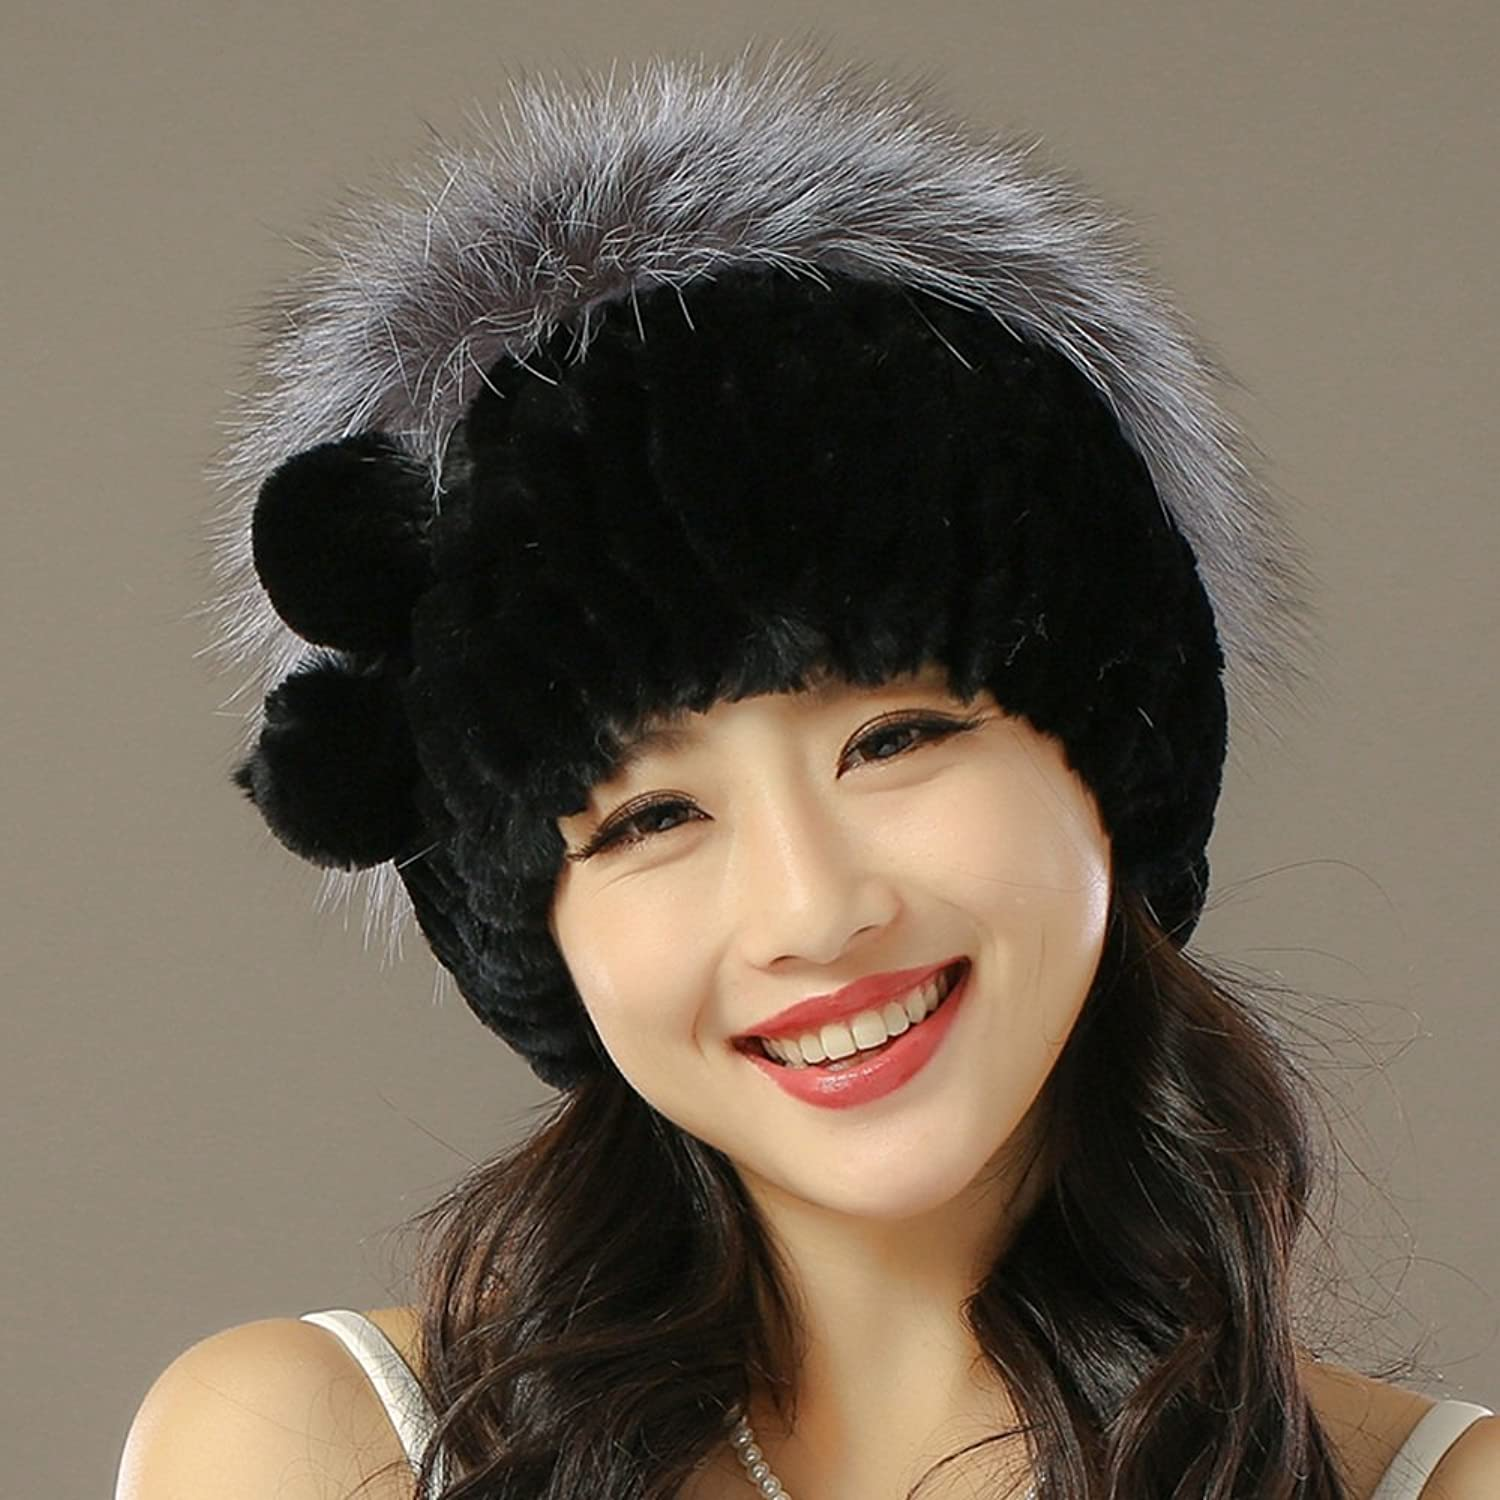 ZHANGRONG- Ms Fashion Hat Winter Keep Warm Hat Ear Predection Cap 8 colors -Winter outdoor warmth (color   5)